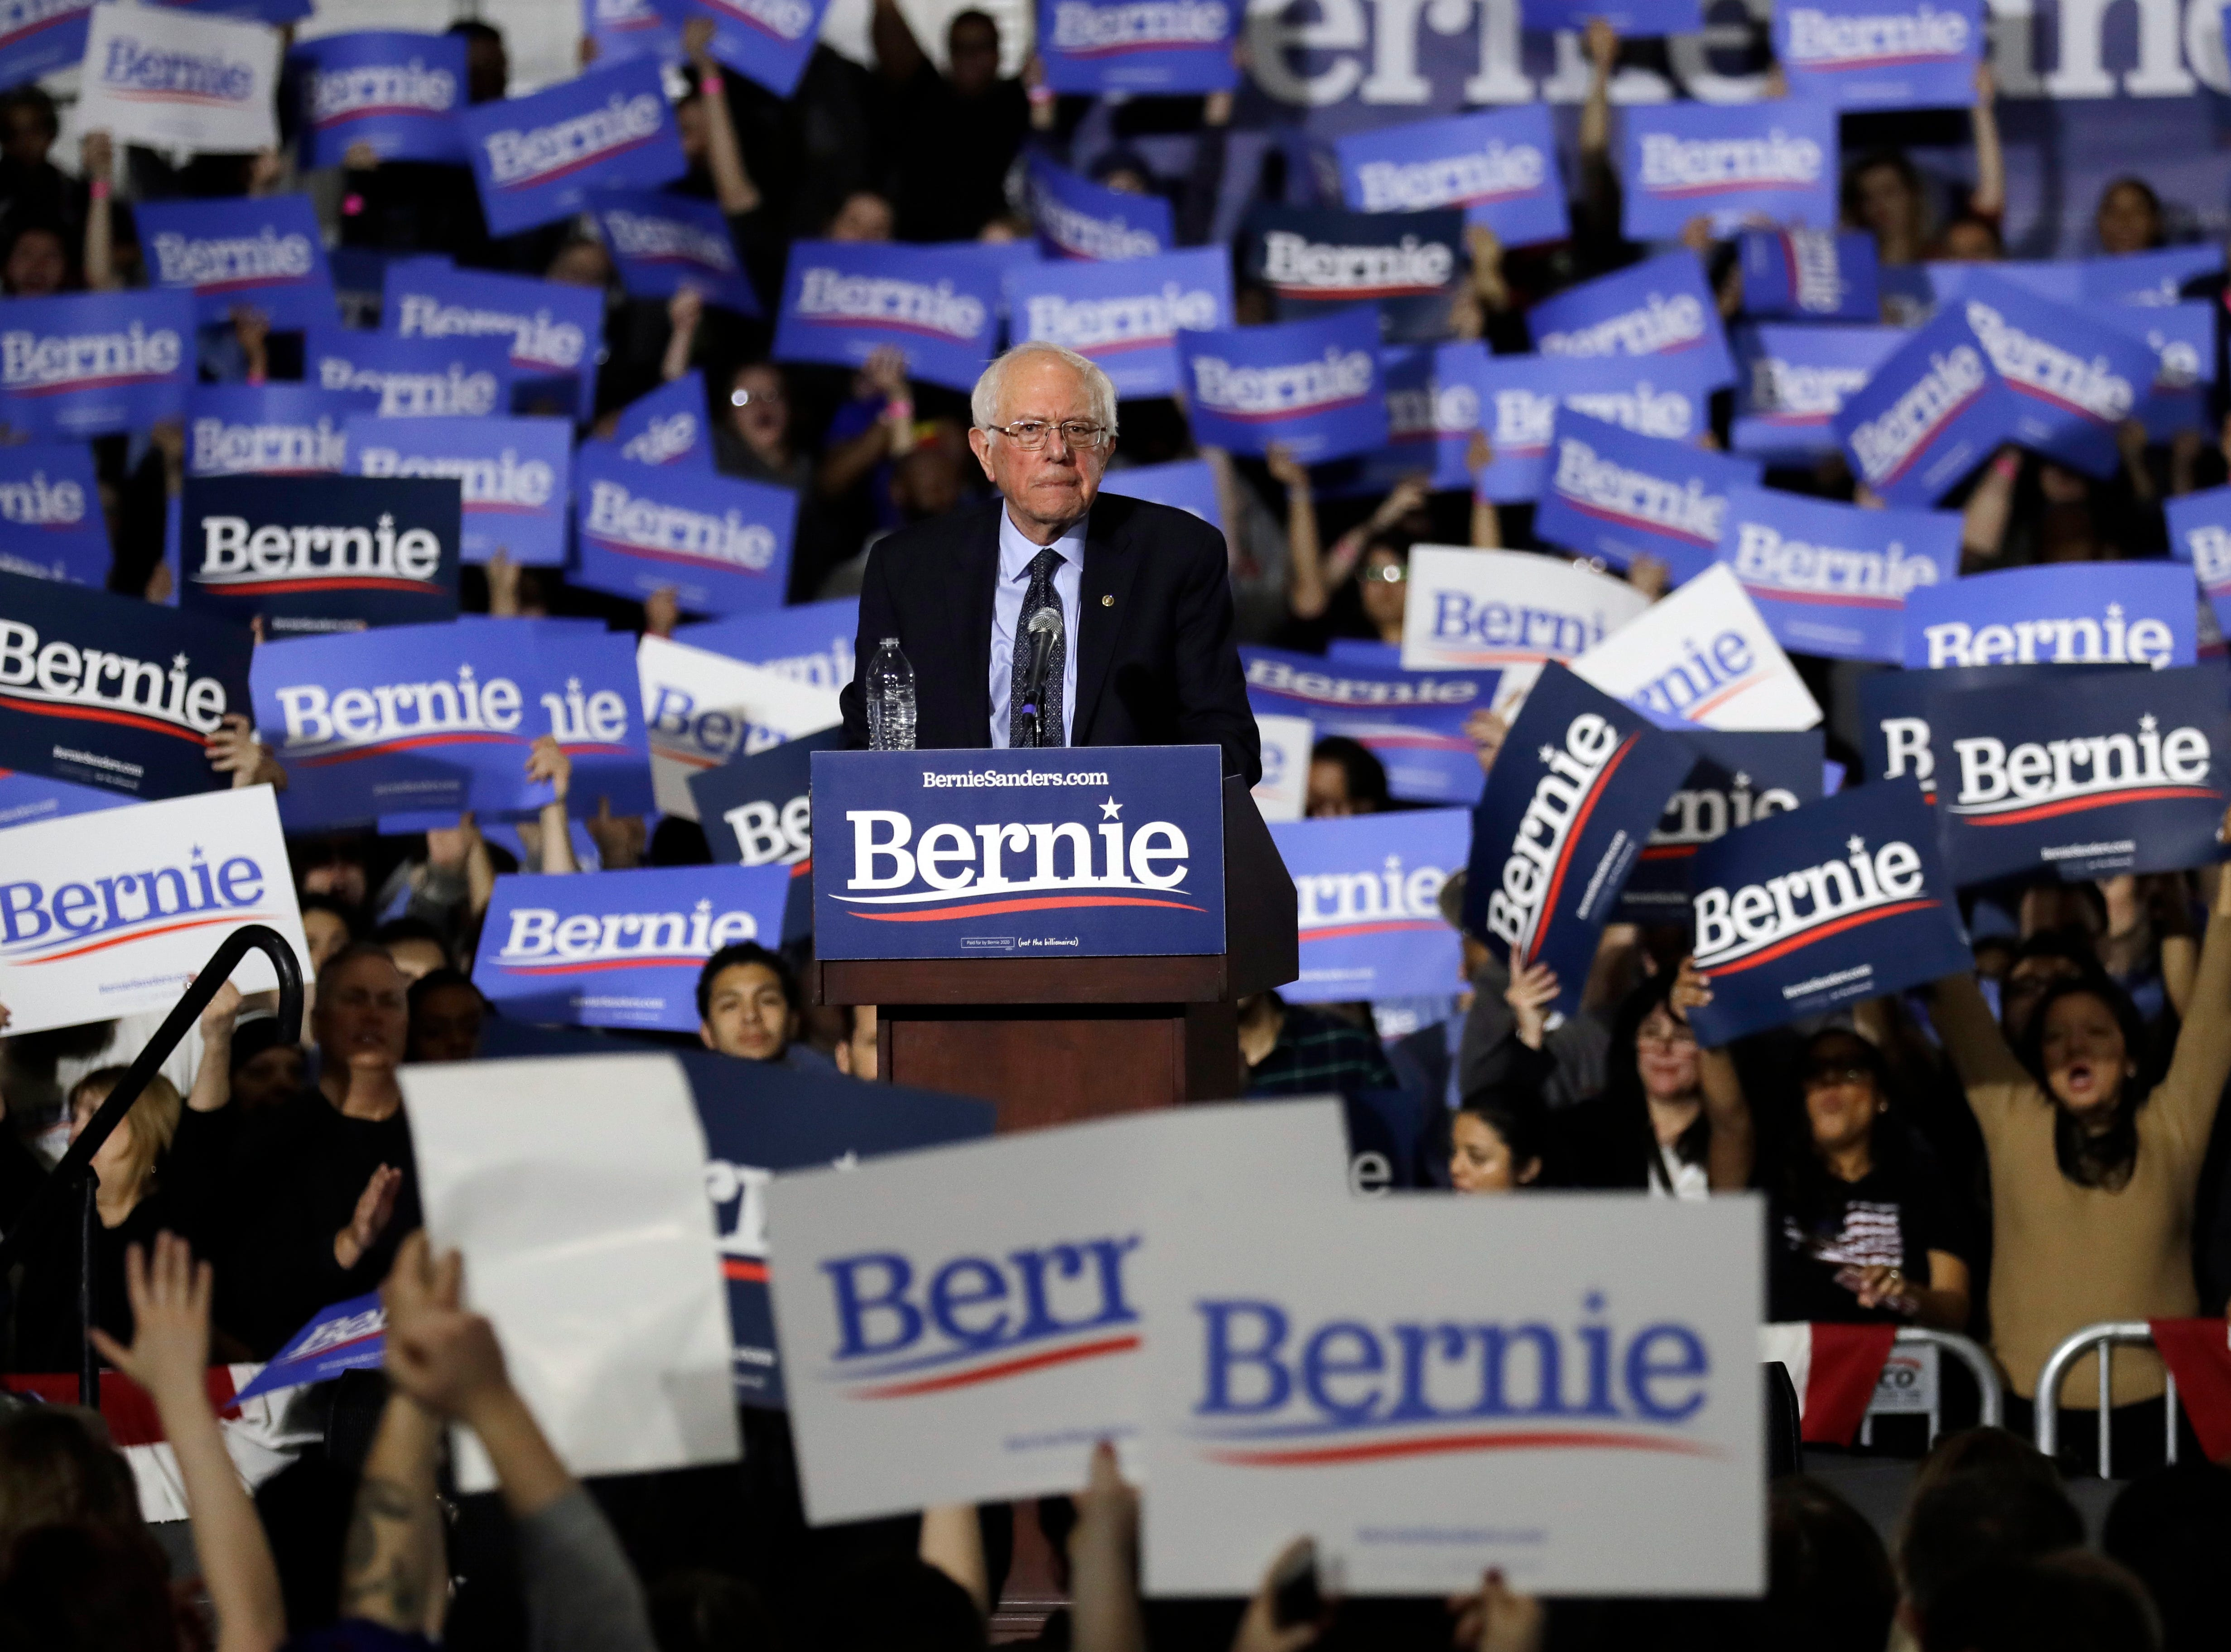 Sen. Bernie Sanders, I-Vt., looks around at his 2020 presidential campaign stop at Navy Pier in Chicago, Sunday, March 3, 2019. Over the next several weeks, Sanders will travel to Iowa, New Hampshire, South Carolina, Nevada, and California. He will then return to Burlington, Vt., for the official launch of his campaign.